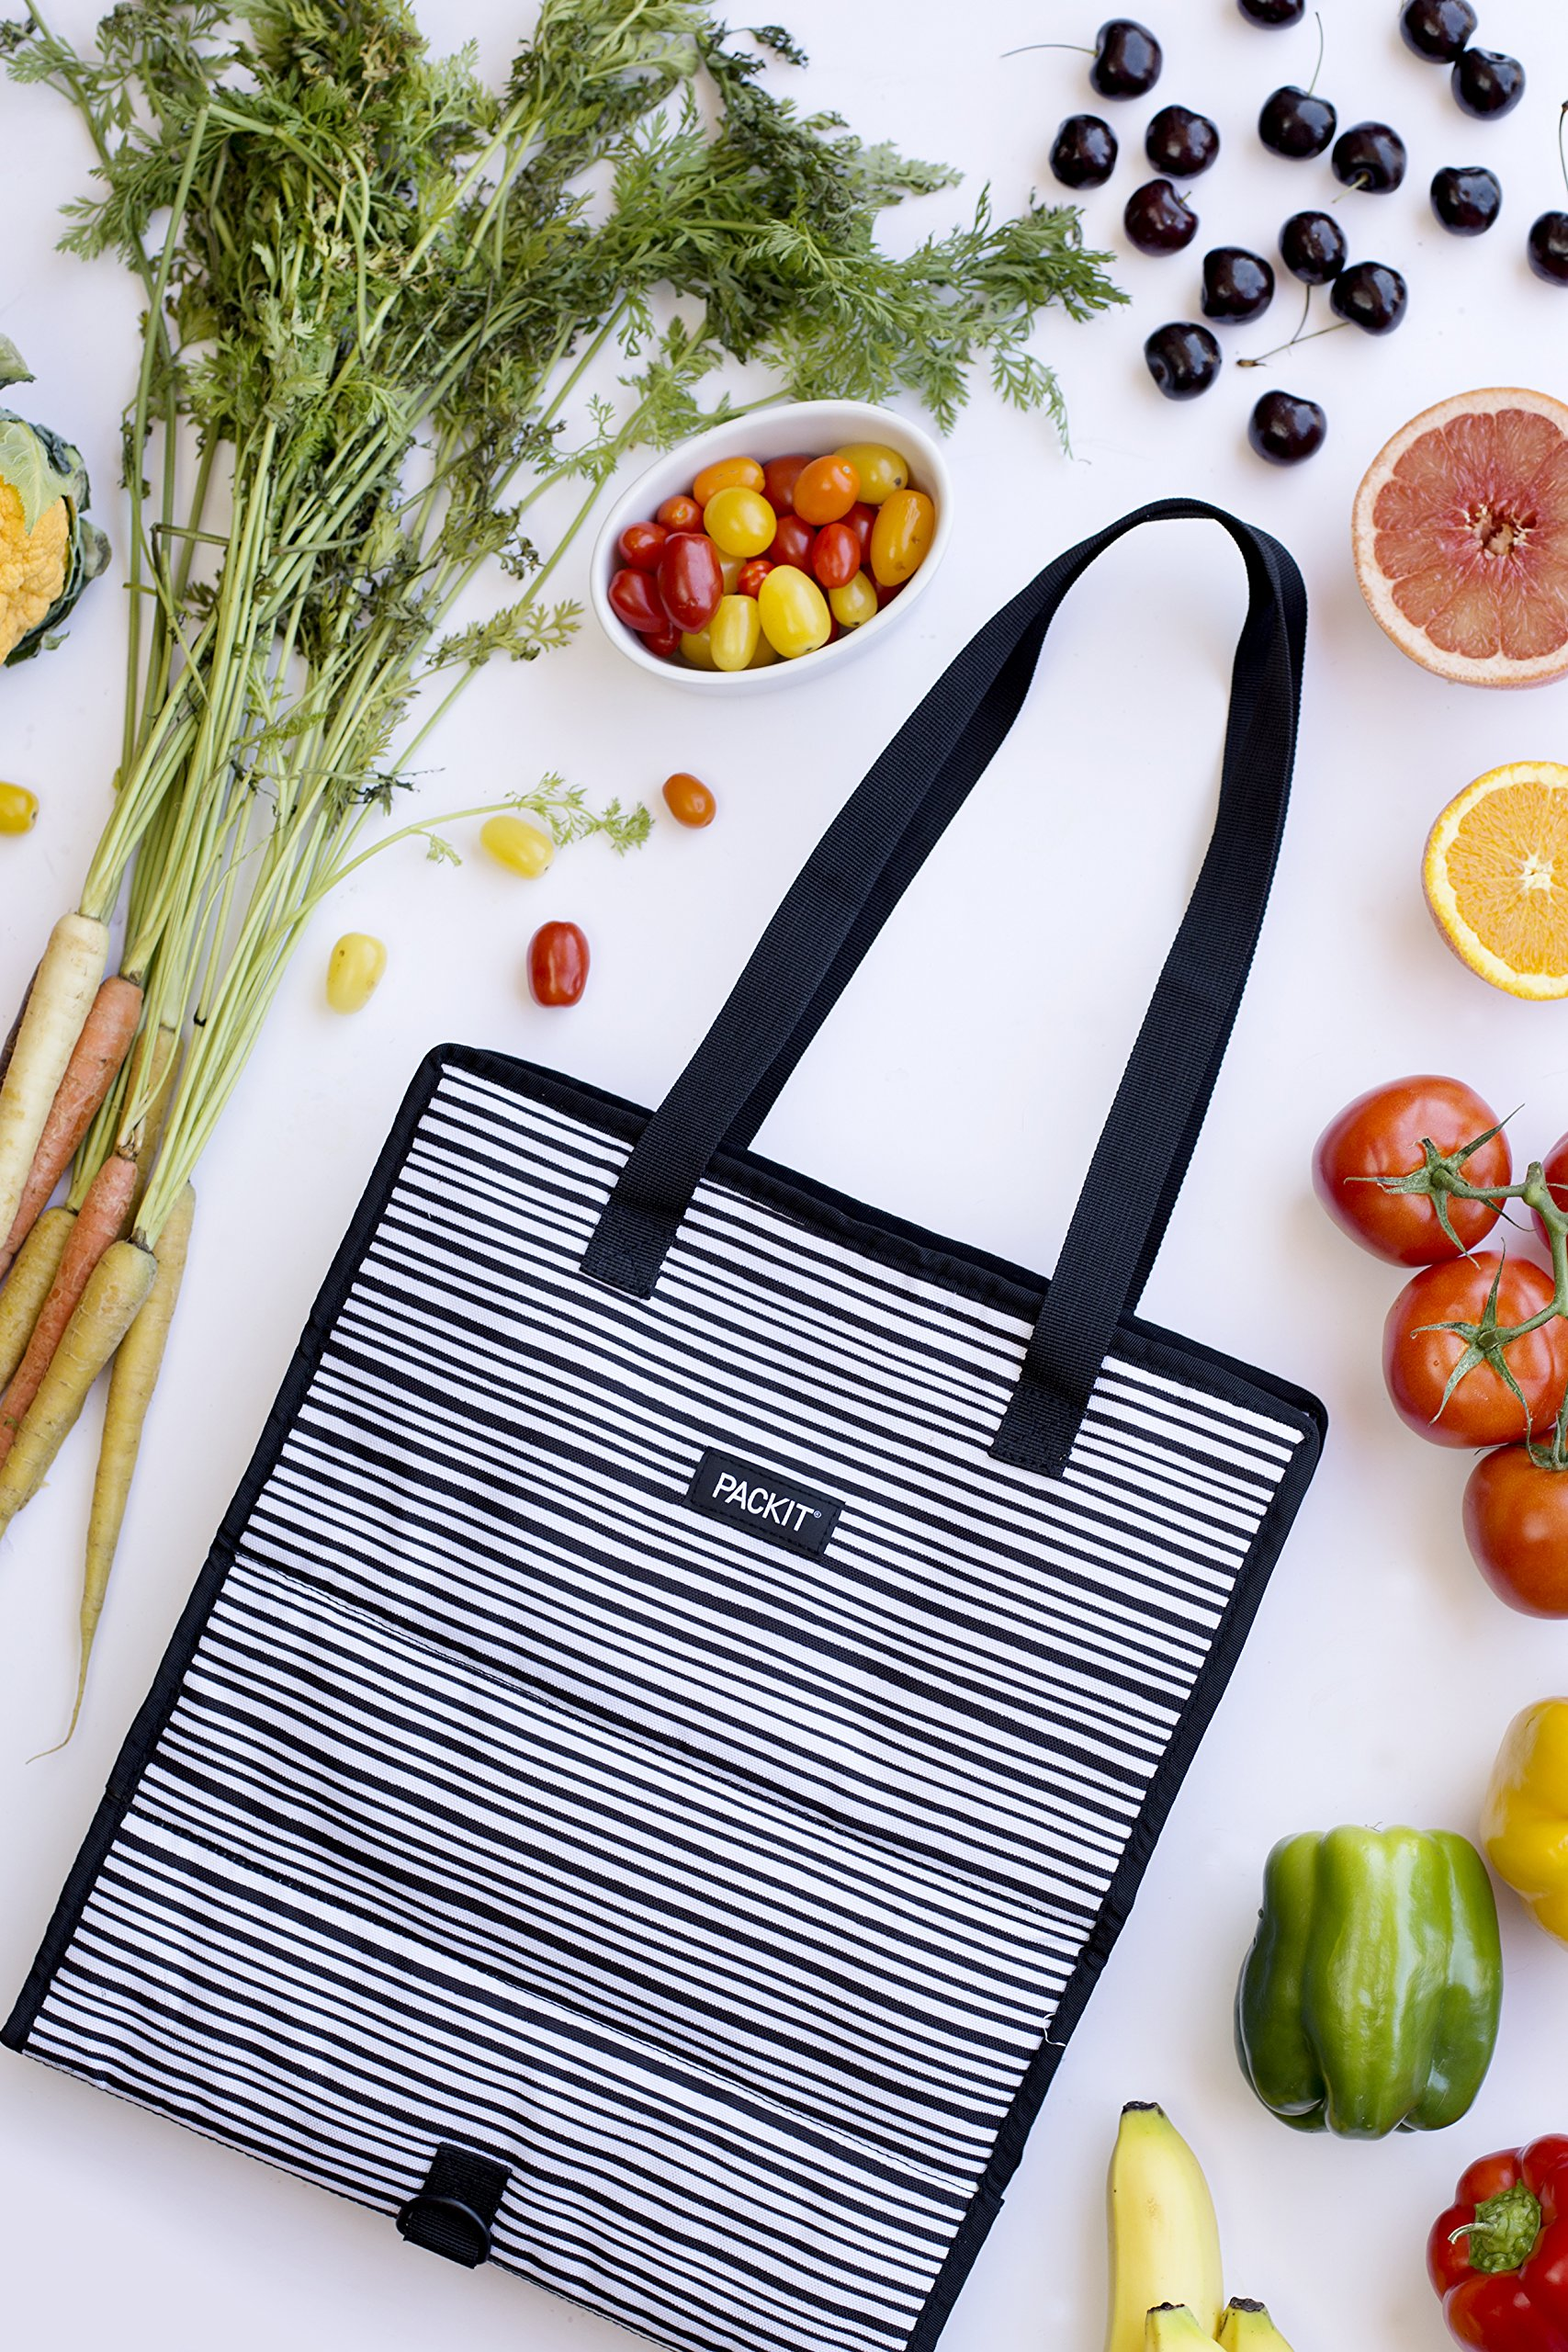 PackIt Freezable Grocery Shopping Bag with Zip Closure, Wobbly Stripes by PackIt (Image #5)